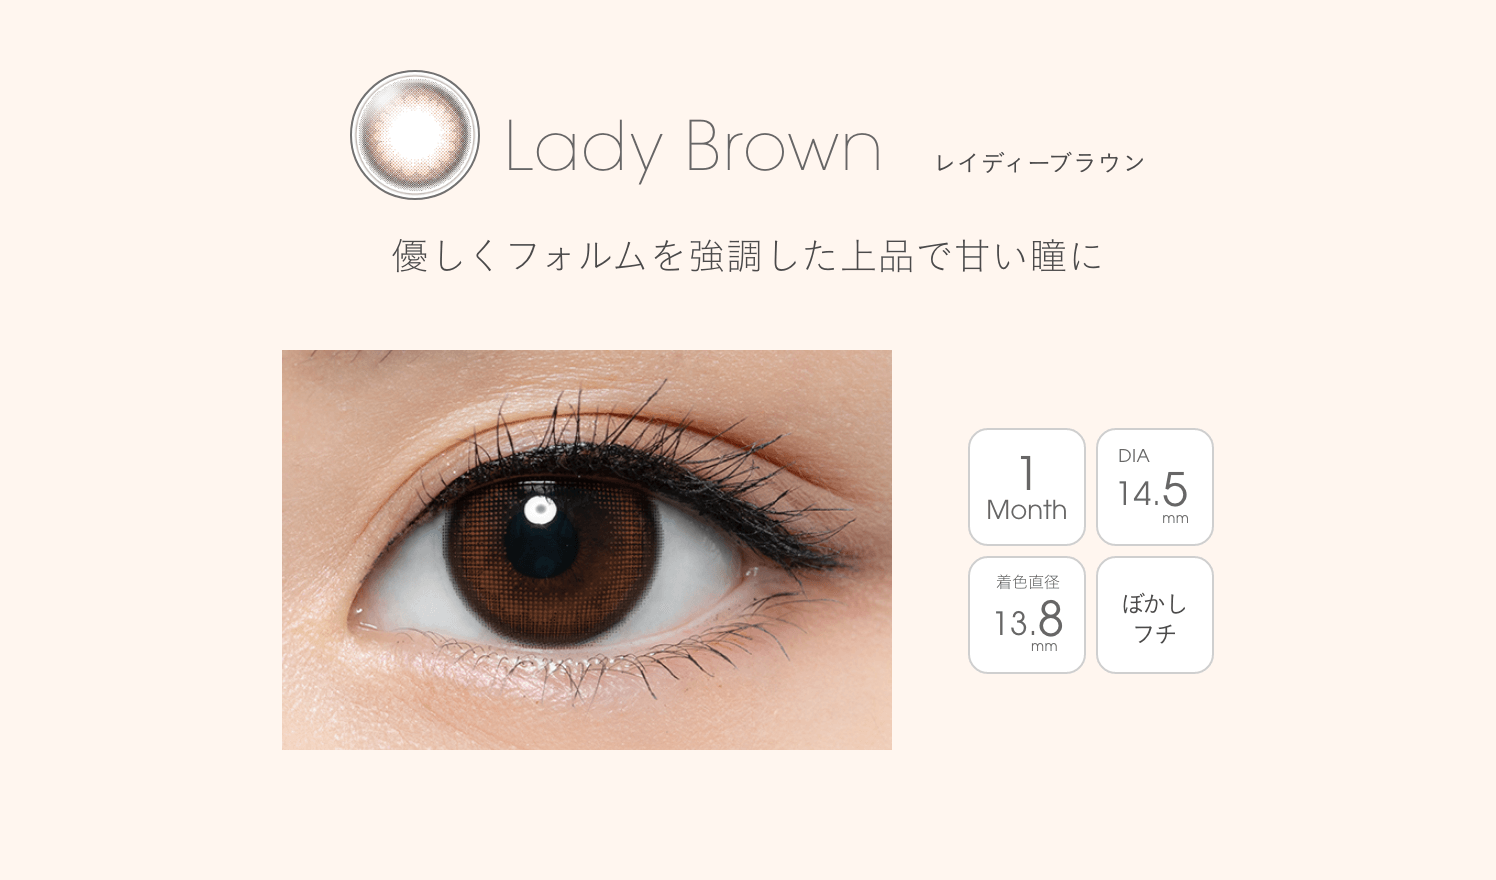 Lady Brown